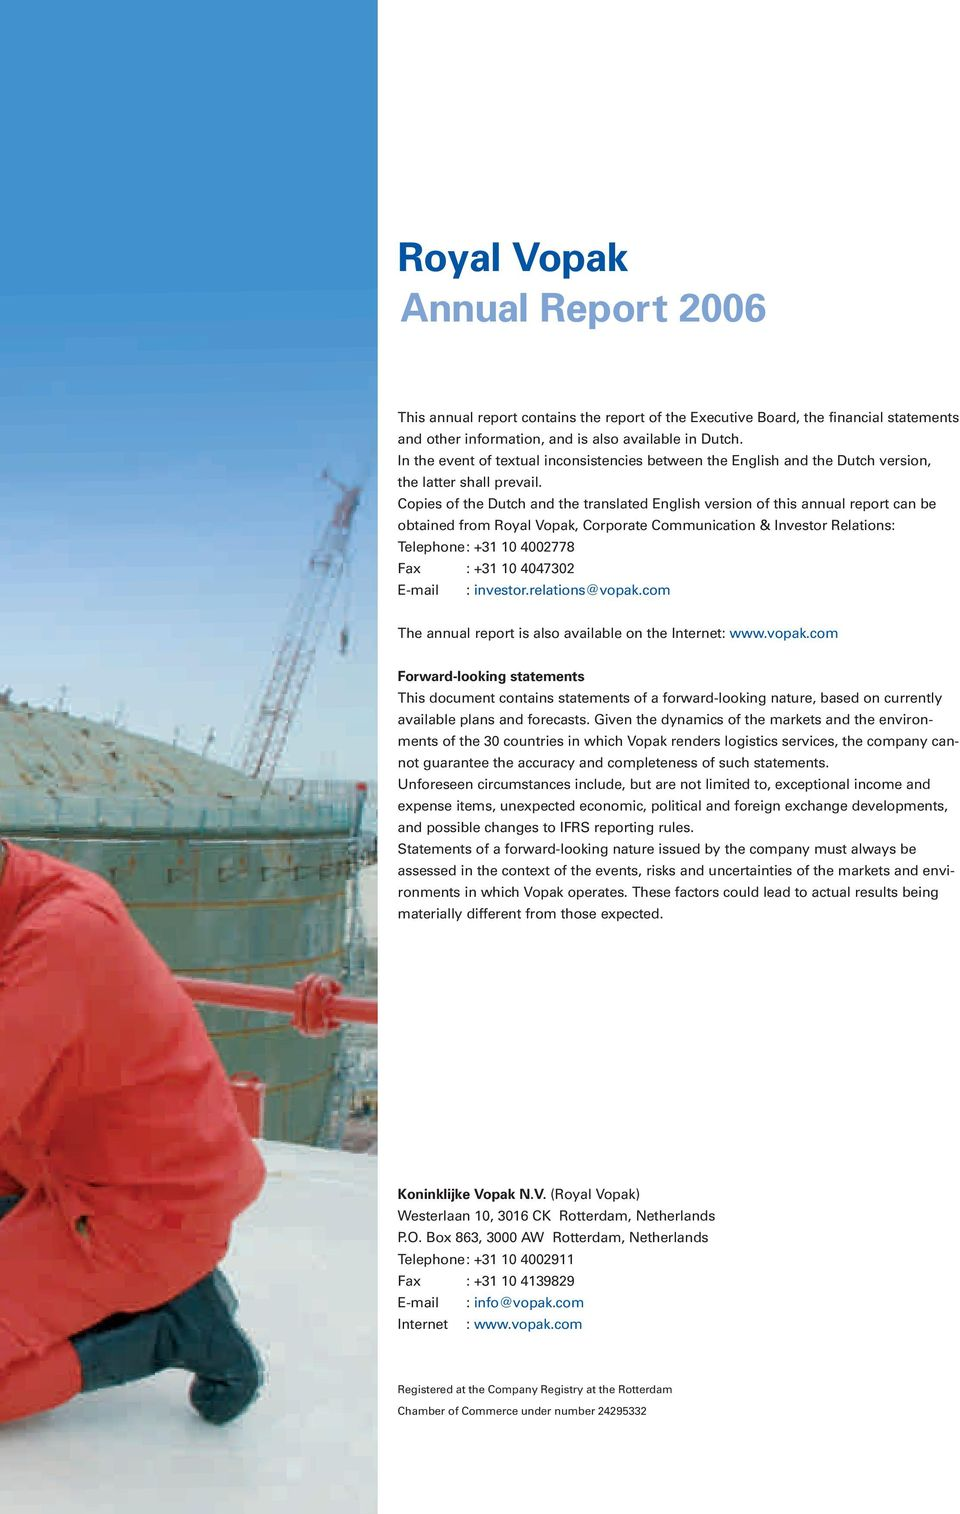 Copies of the Dutch and the translated English version of this annual report can be obtained from Royal Vopak, Corporate Communication & Investor Relations: Telephone: +31 10 4002778 Fax : +31 10